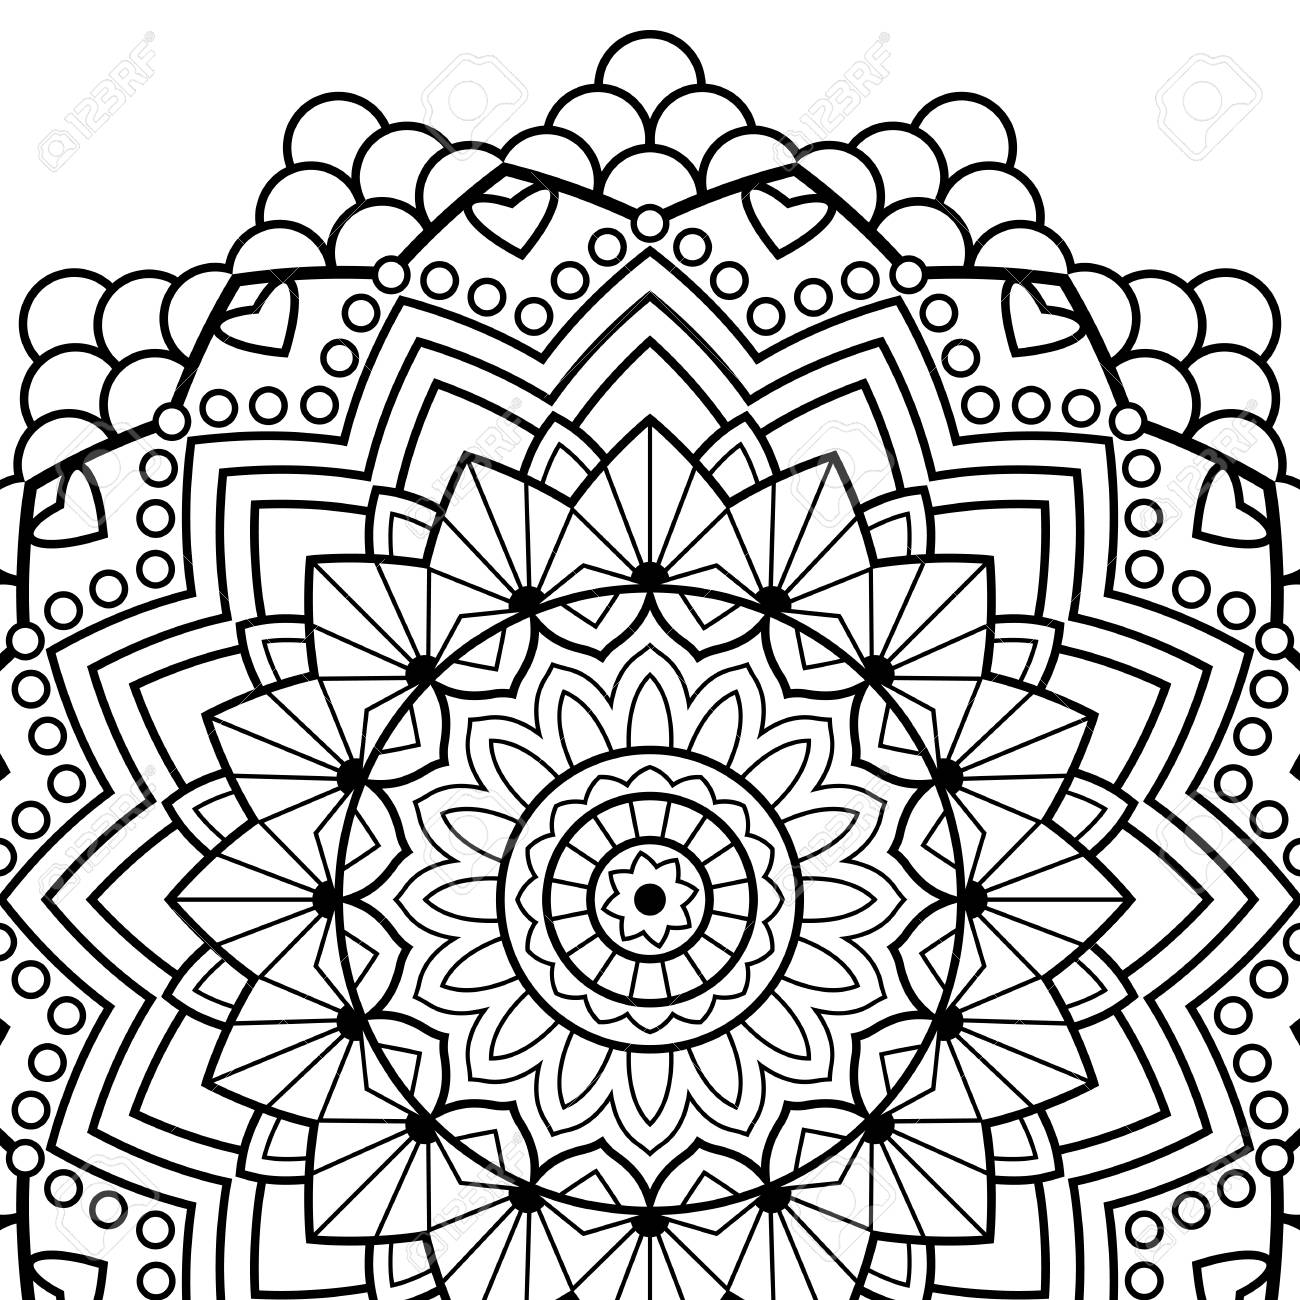 Coloring Book Pages Mandala Indian Antistress Medallion Abstract Islamic Flower Arabic Henna Design